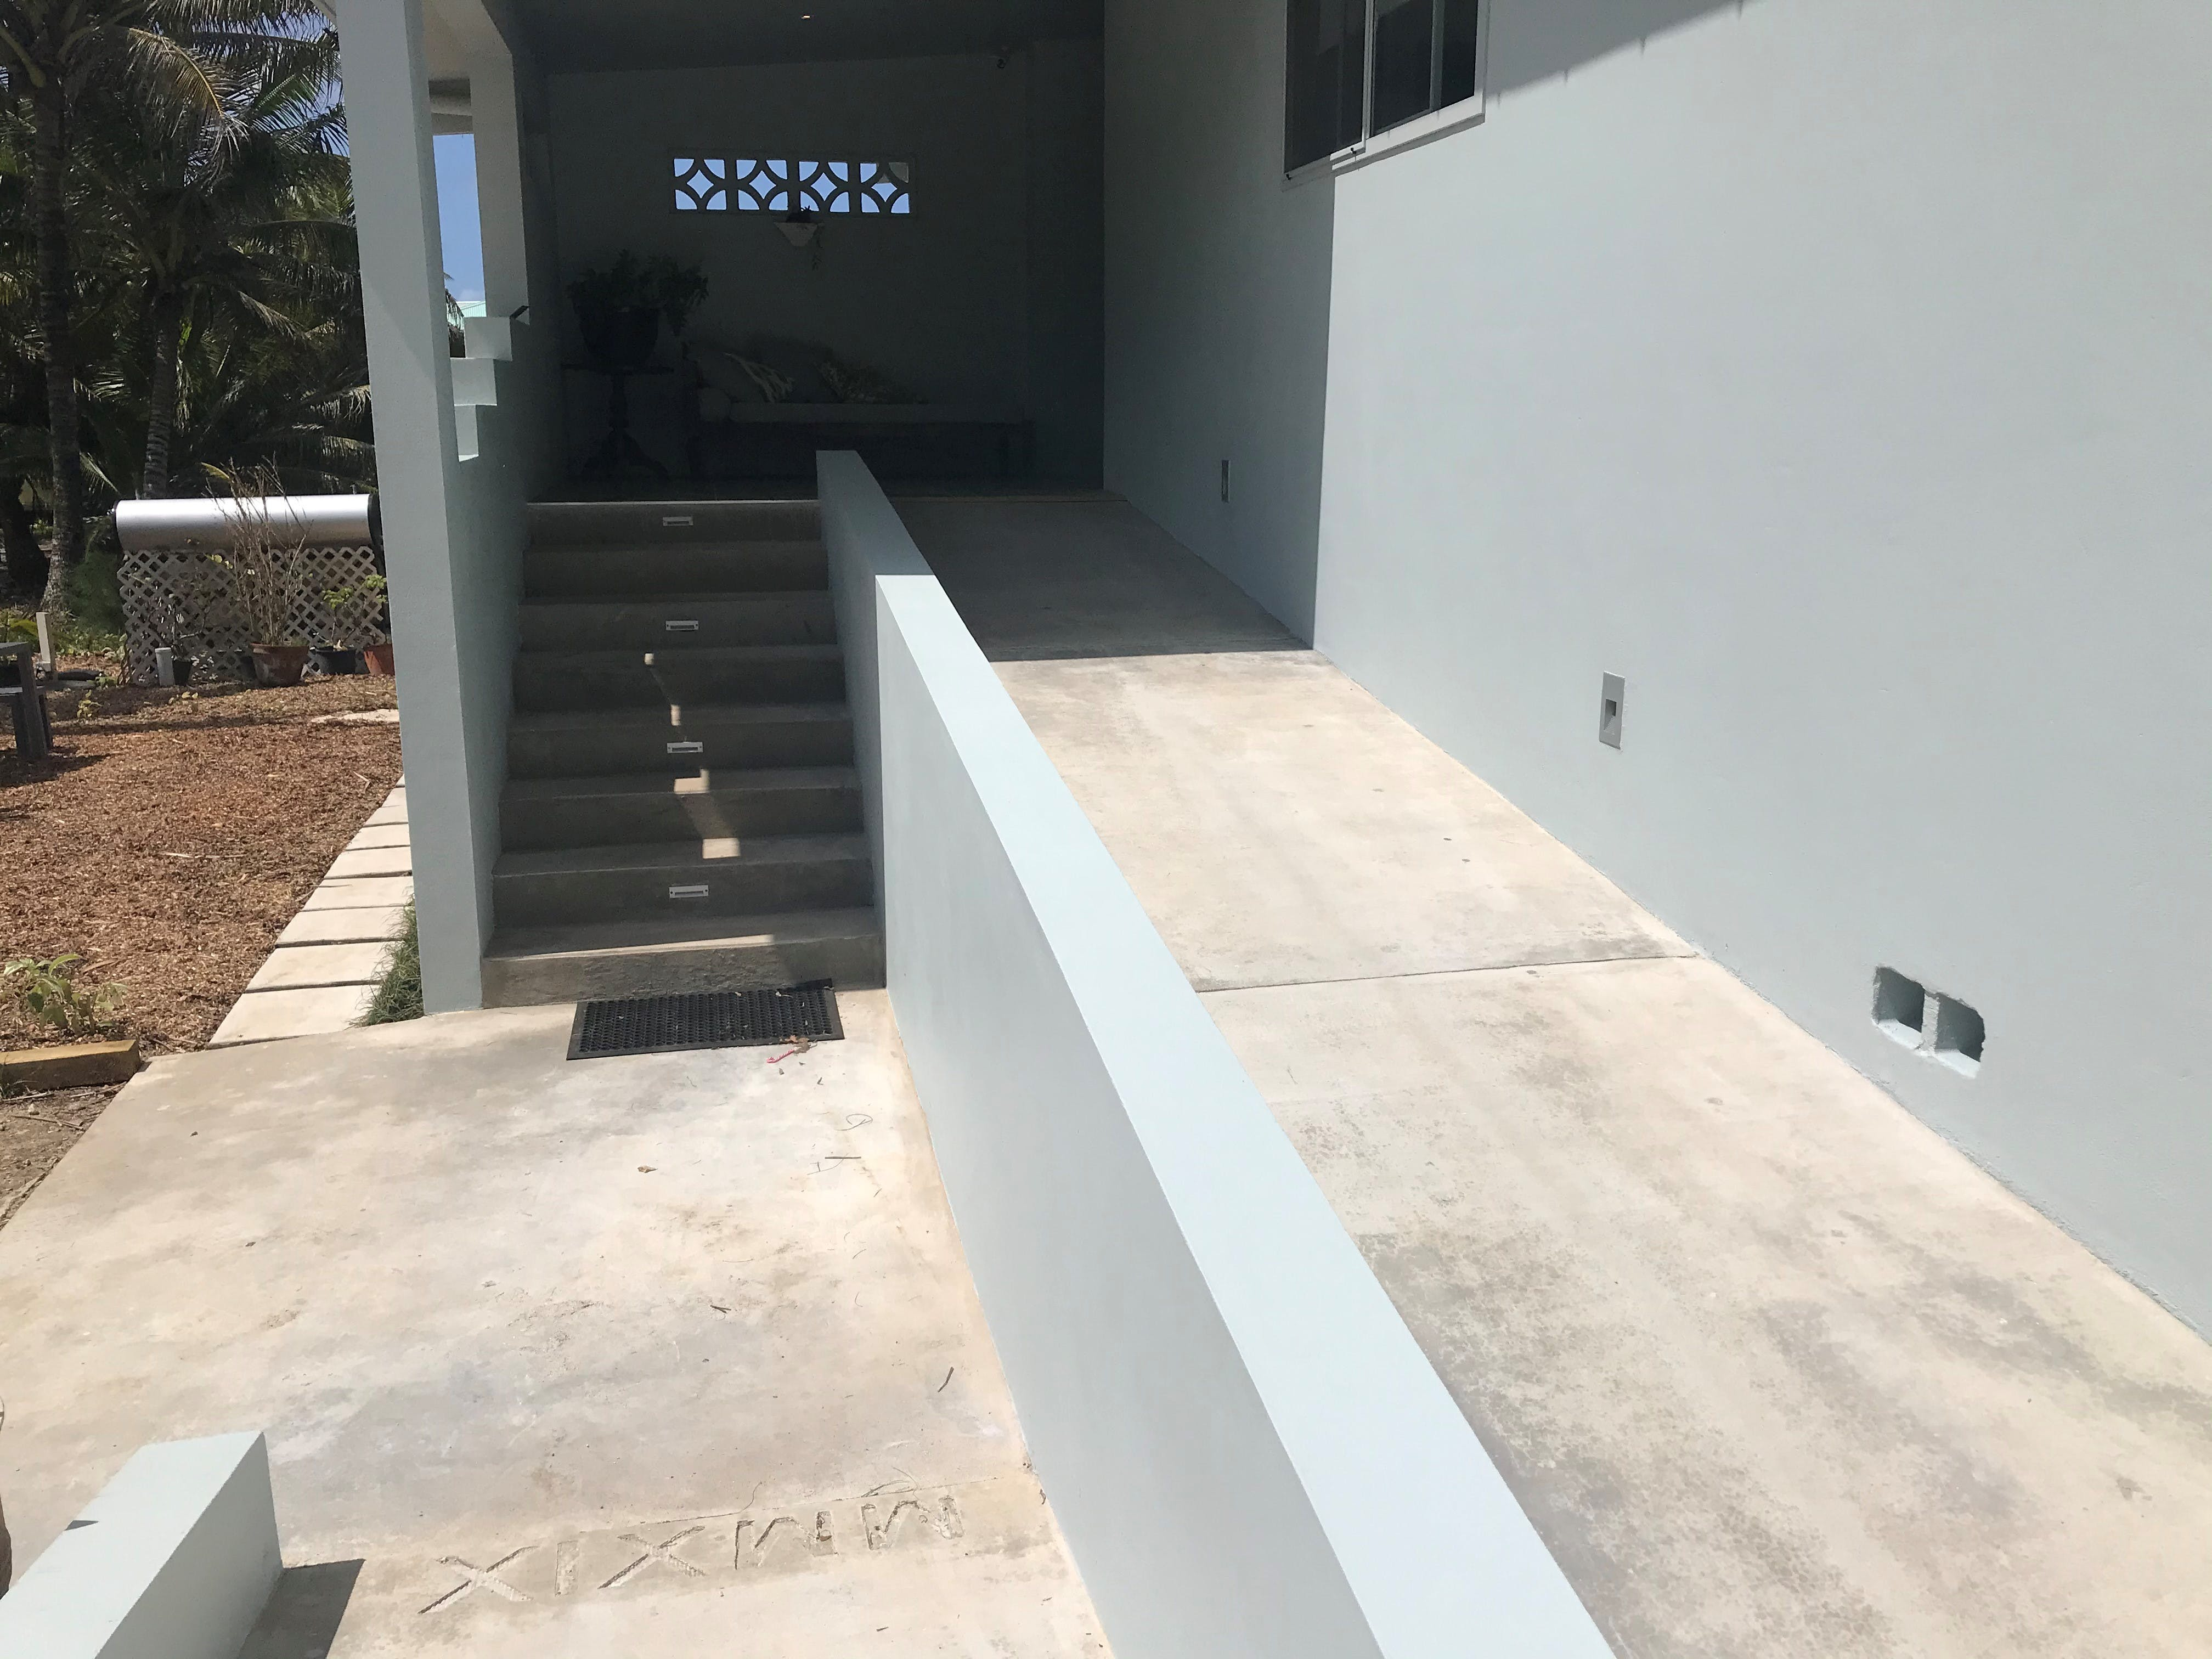 Well lit stair and wheel chair ramp for easy accessibility